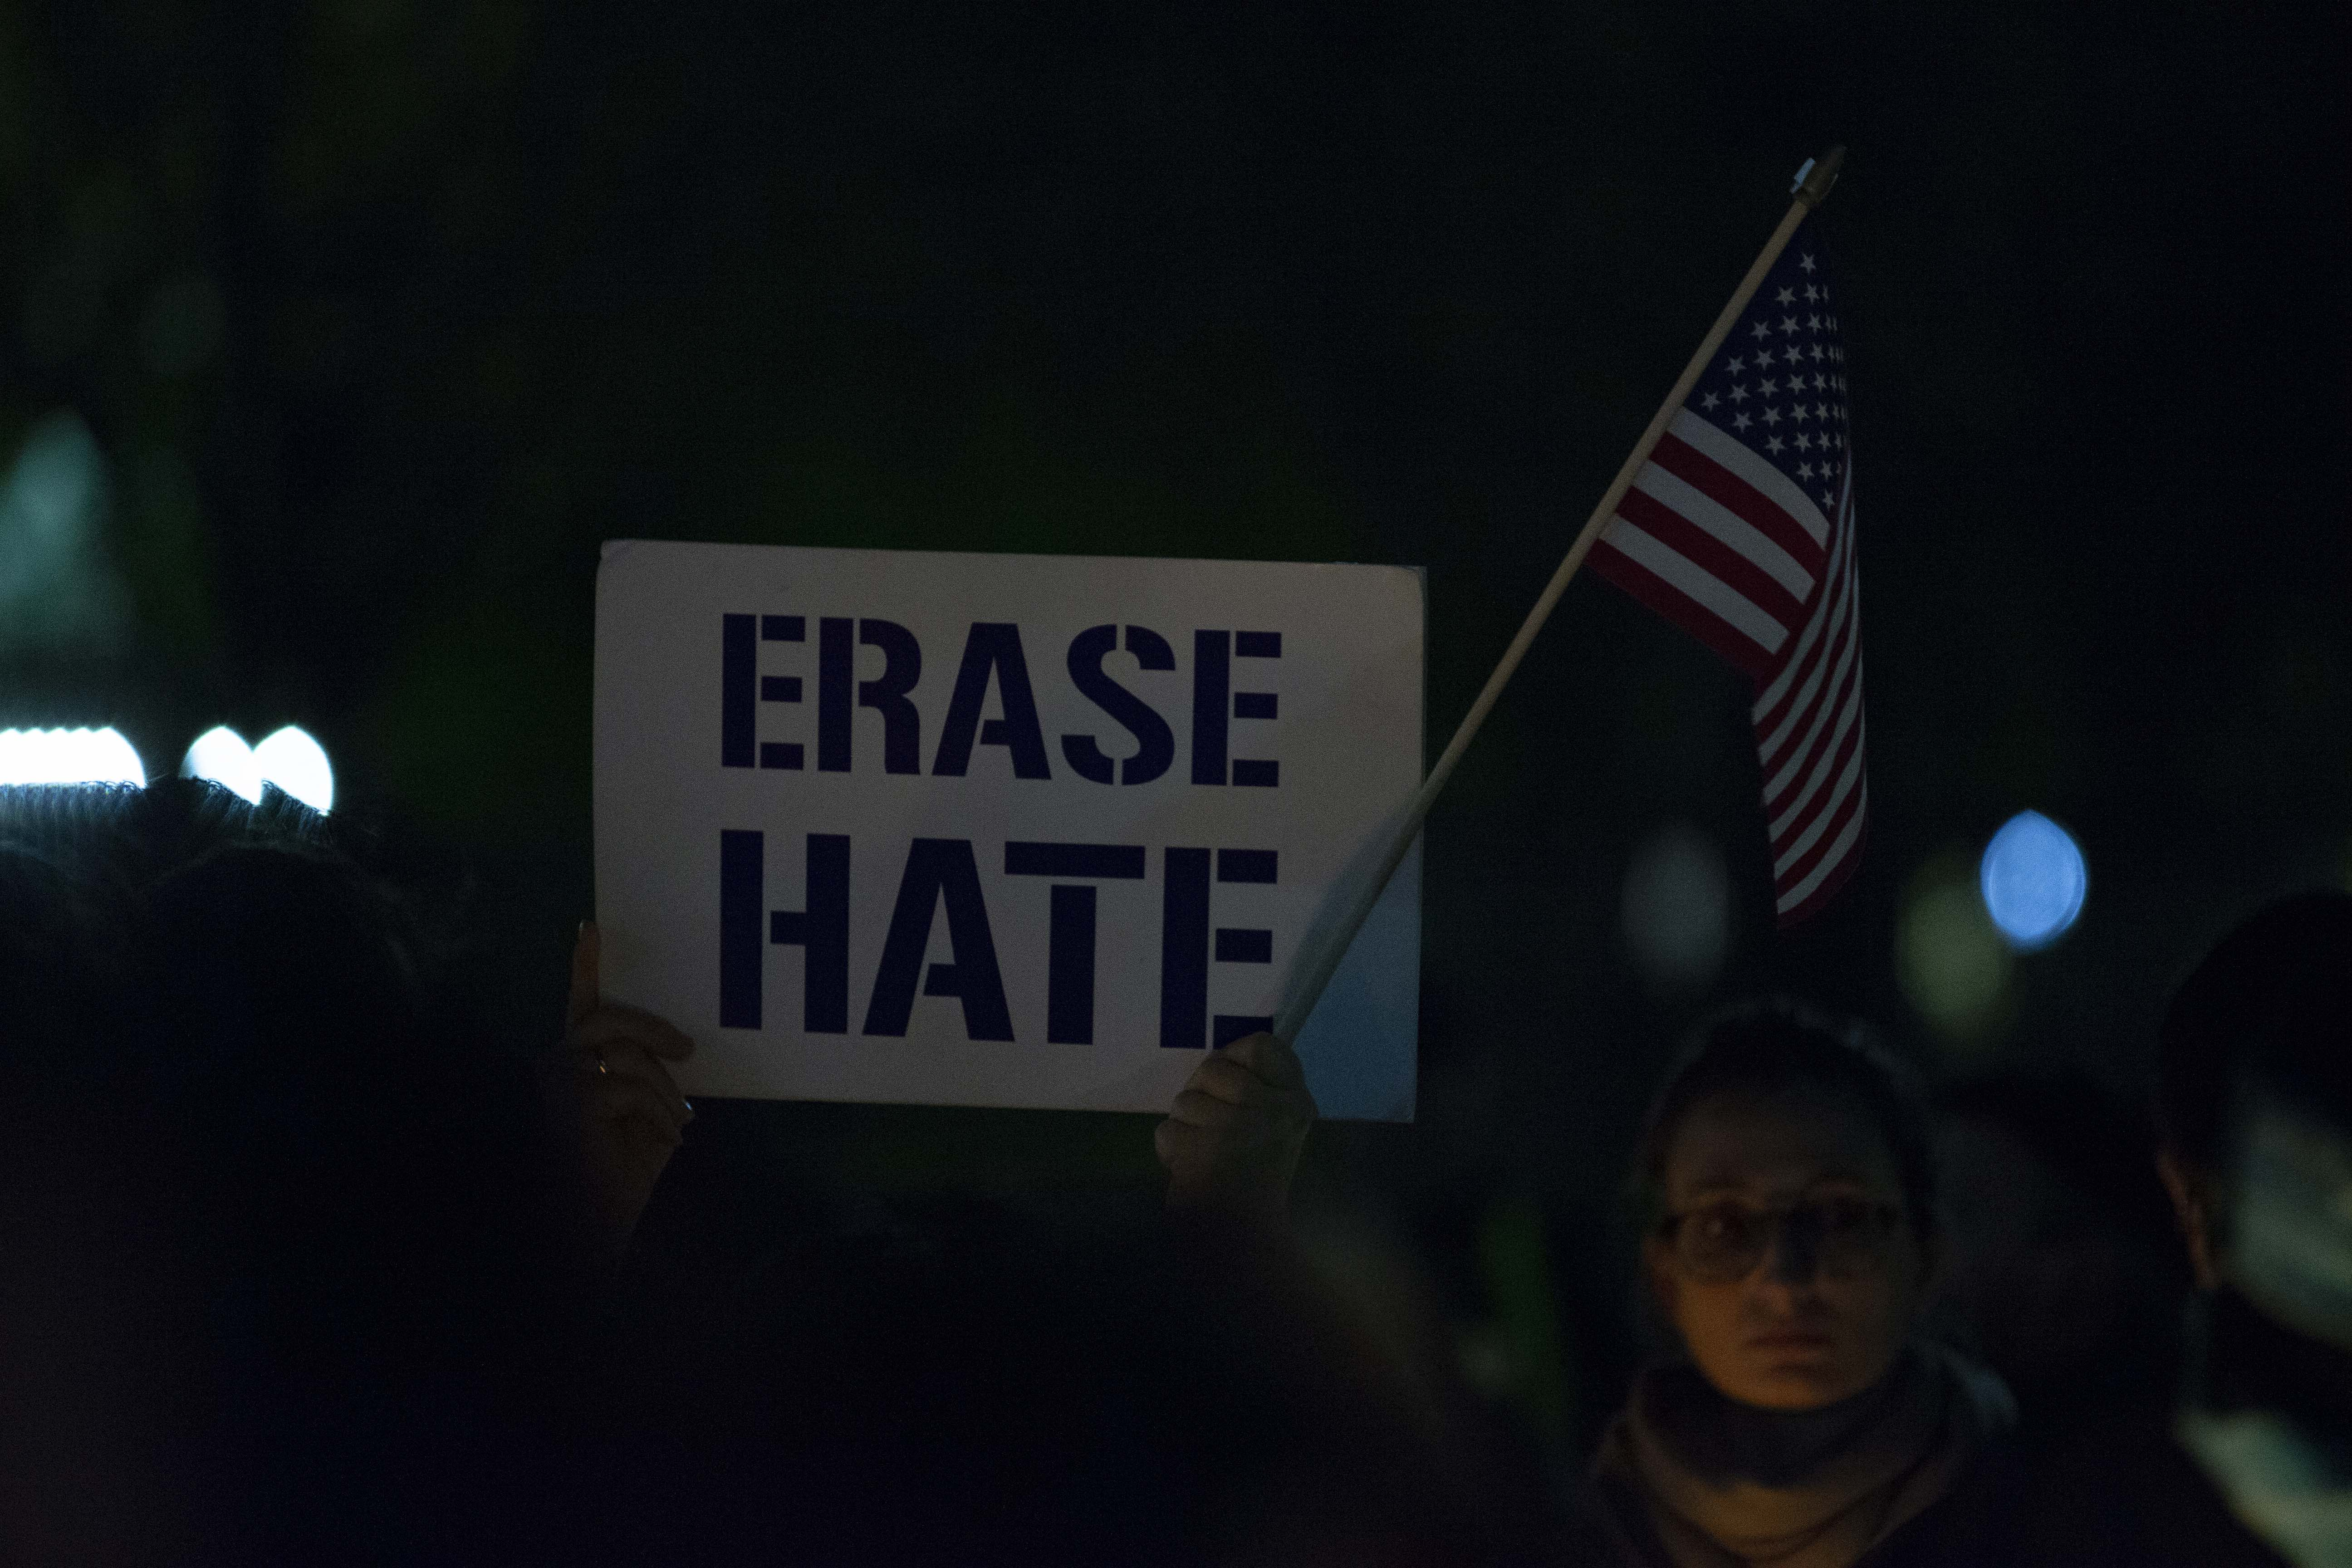 While Hate Crimes Are Down 1%, Violence Against Latinos & Trans People Surge